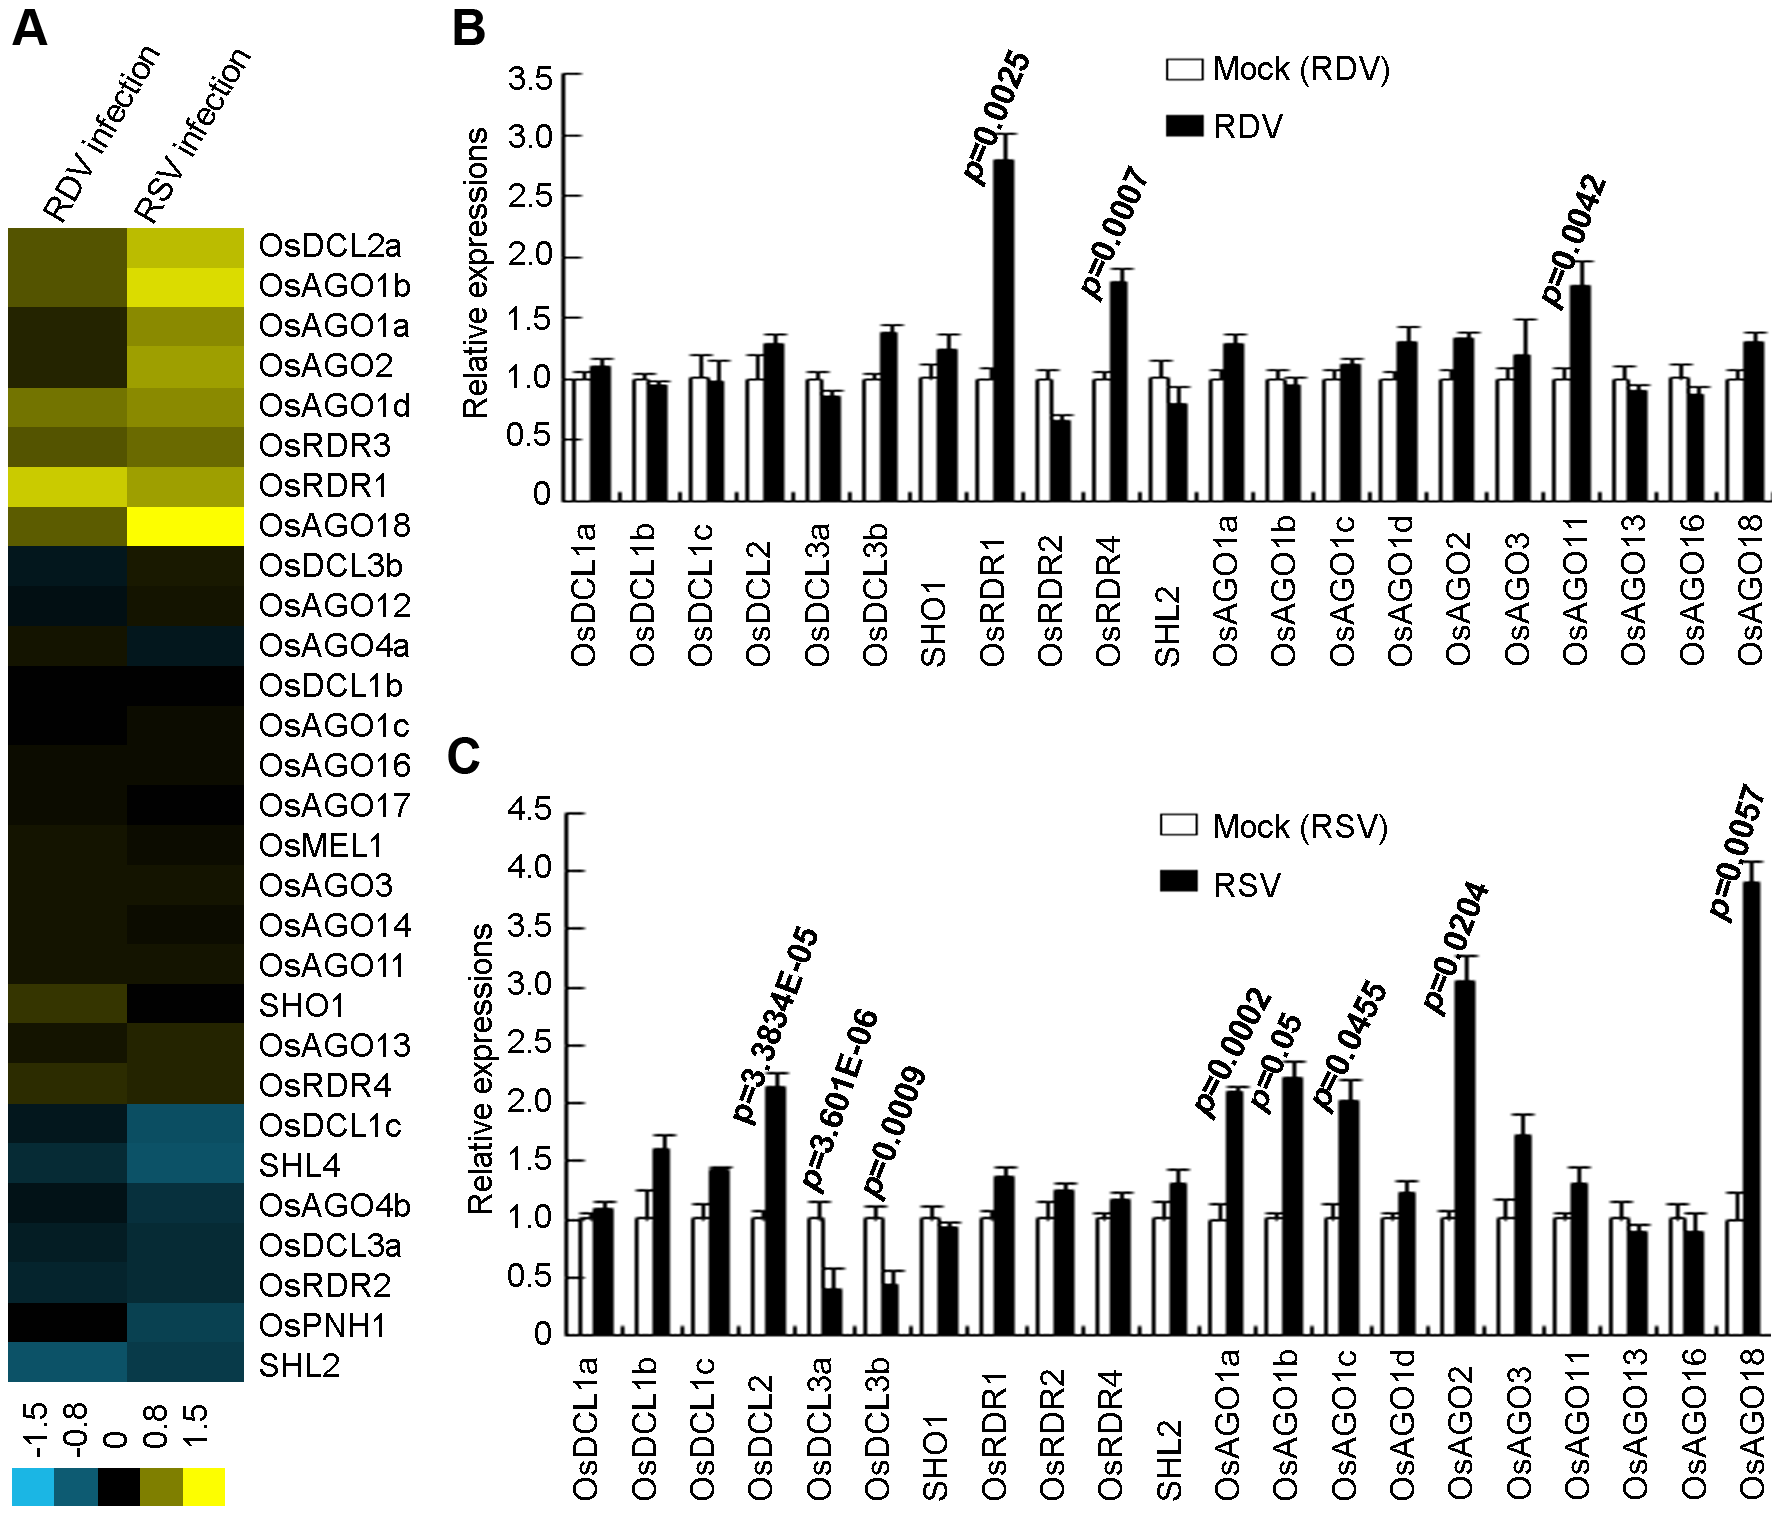 Expression analysis of OsDCLs, OsAGOs and OsRDRs of rice plants infected with RDV and RSV as compared to mock controls.